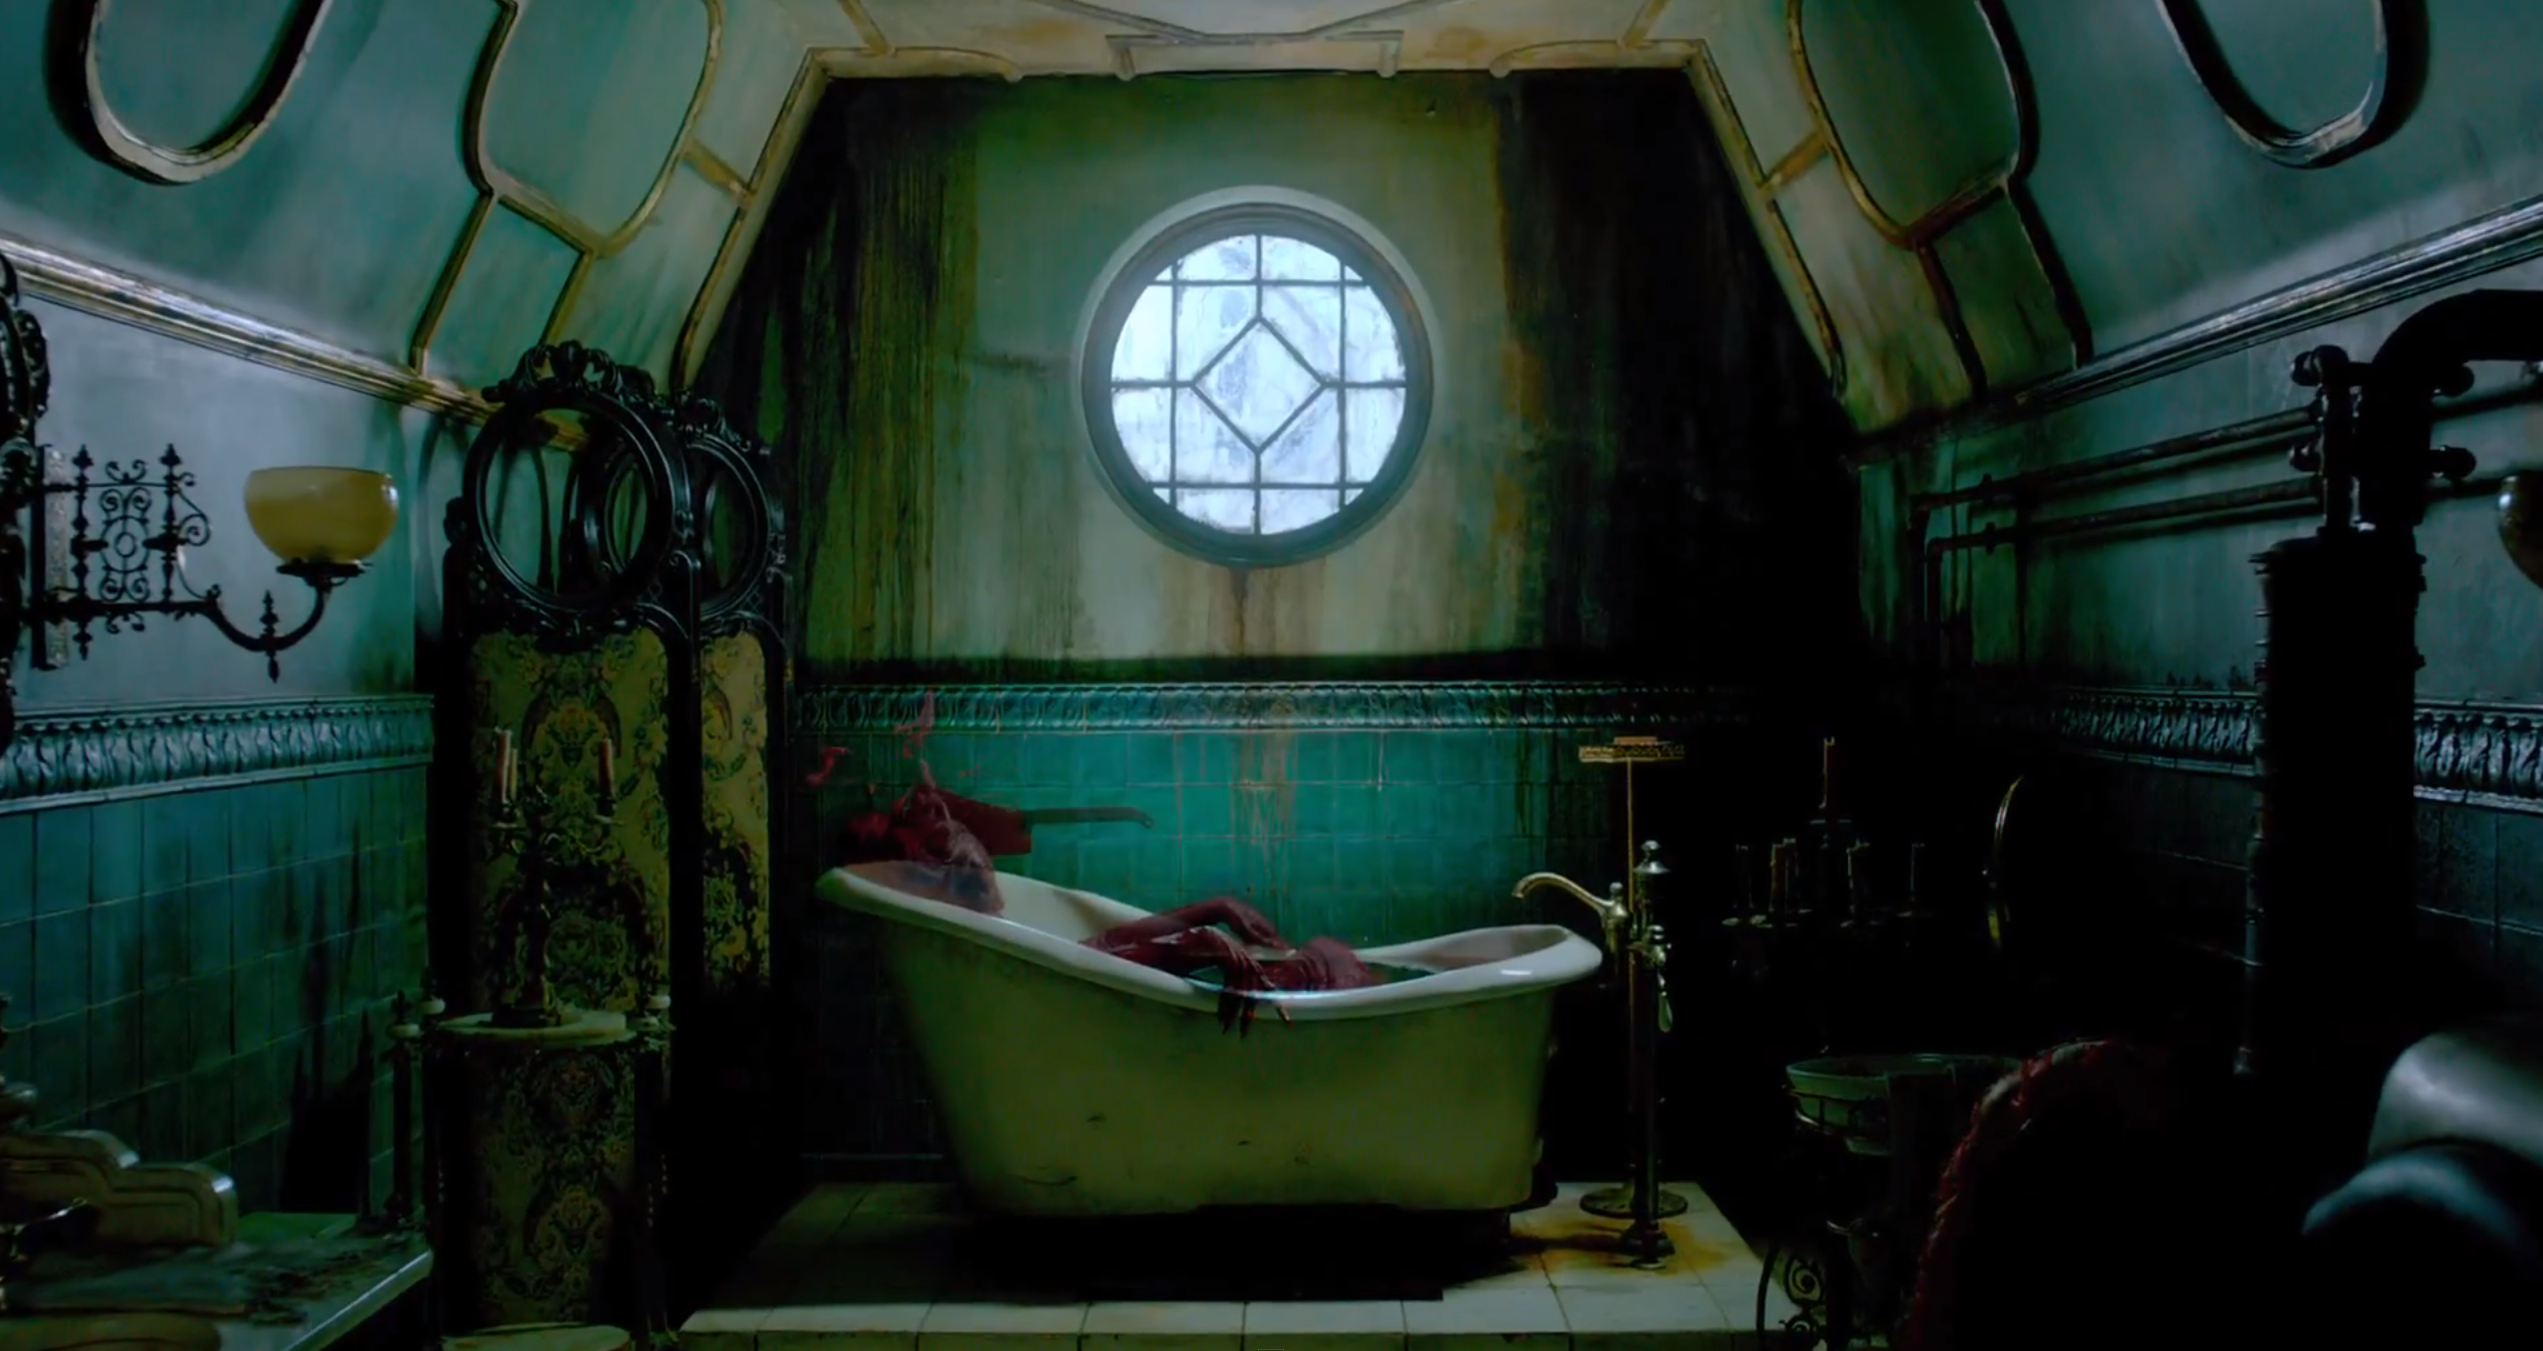 Watch The Mesmerizing First Trailer For Guillermo Del Toro